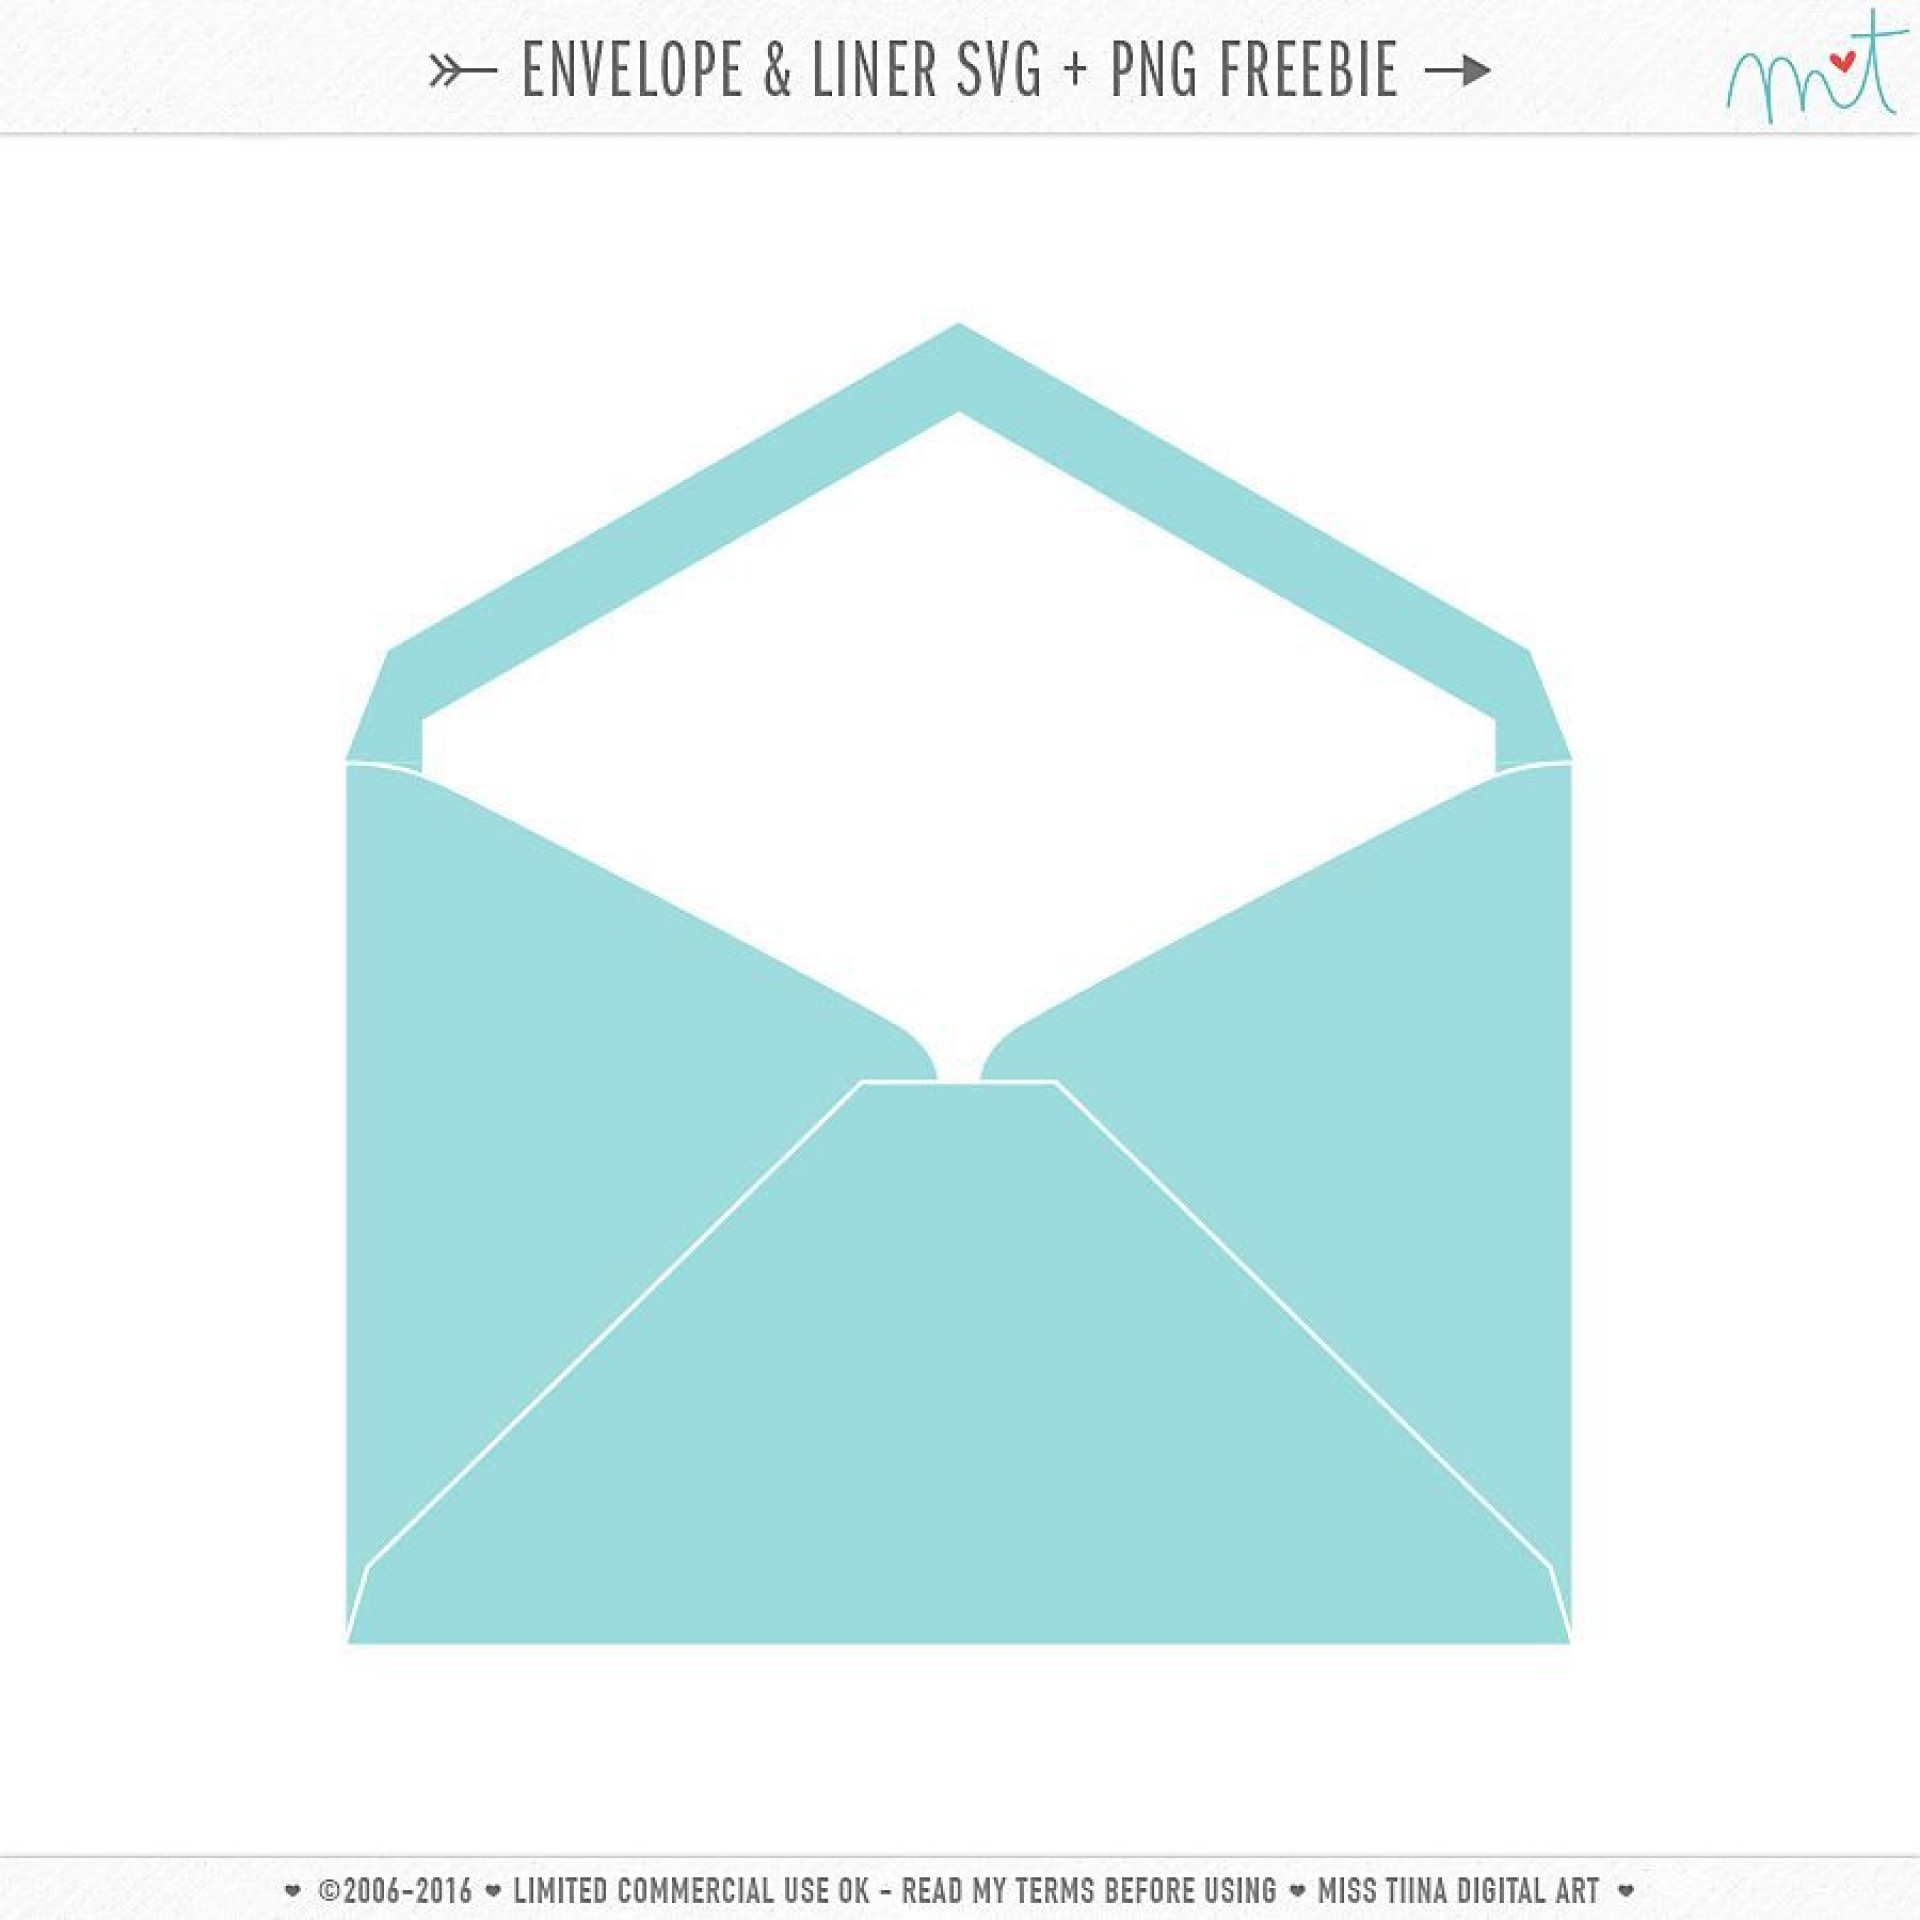 008 Unique A7 Envelope Liner Template Free Highest Quality 1920